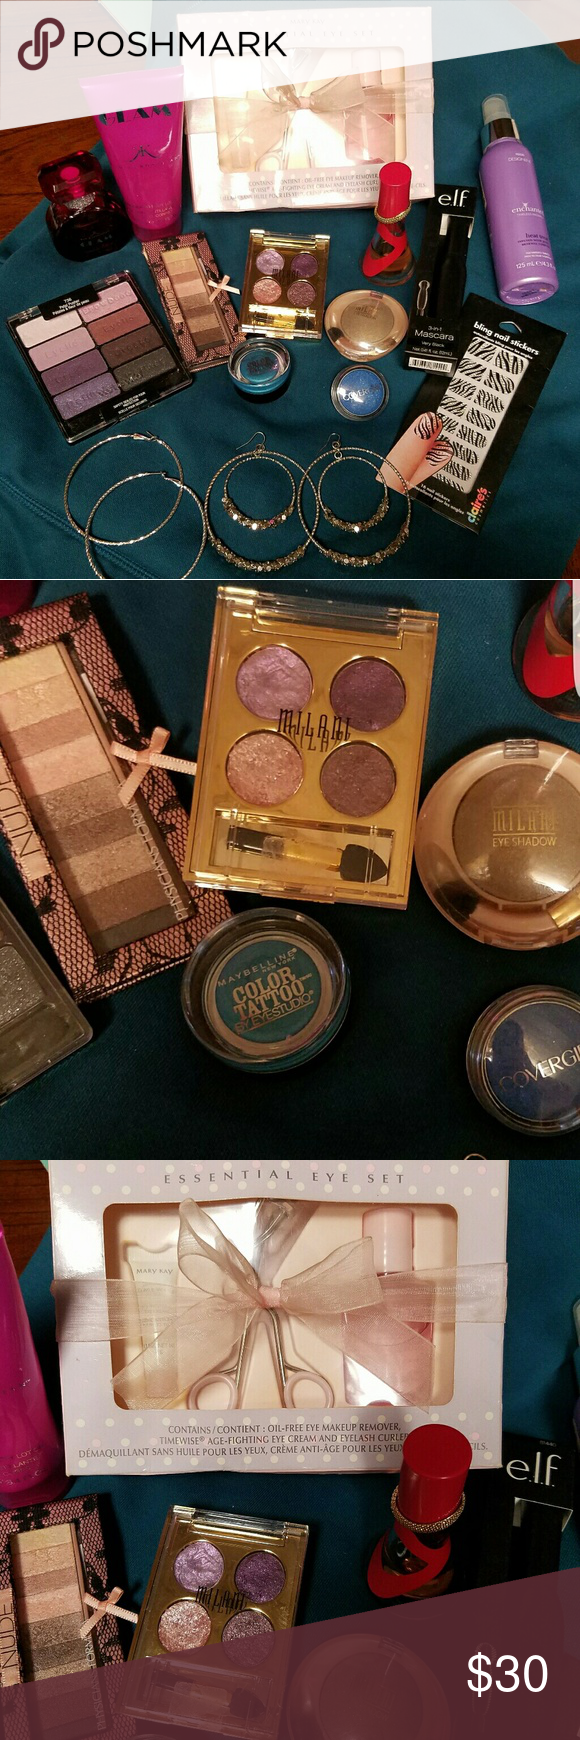 ***Big Chick Bundle*** Big mixture everything is brand name:1.Mary Kay Essential Eye Set-never used, in box. 2.Kim Kardashian Glam perf&lotion- barley used. 3.WetNWild  8 shadows one shadow has one swipe.4. Physicians Formula, nude palette couple swipes.5. Milani Fierce Foil Eye Shine-wet- one swipe in one shadow.6. Milani shadow two swipes.6. Maybelline Color Tattoo-wet-one swipe.7. Covergirl shadow-never used.7. Rihanna Rebelle .5oz 1/2 full.8. Brand new Elf mascara-black.9.Regis heat…